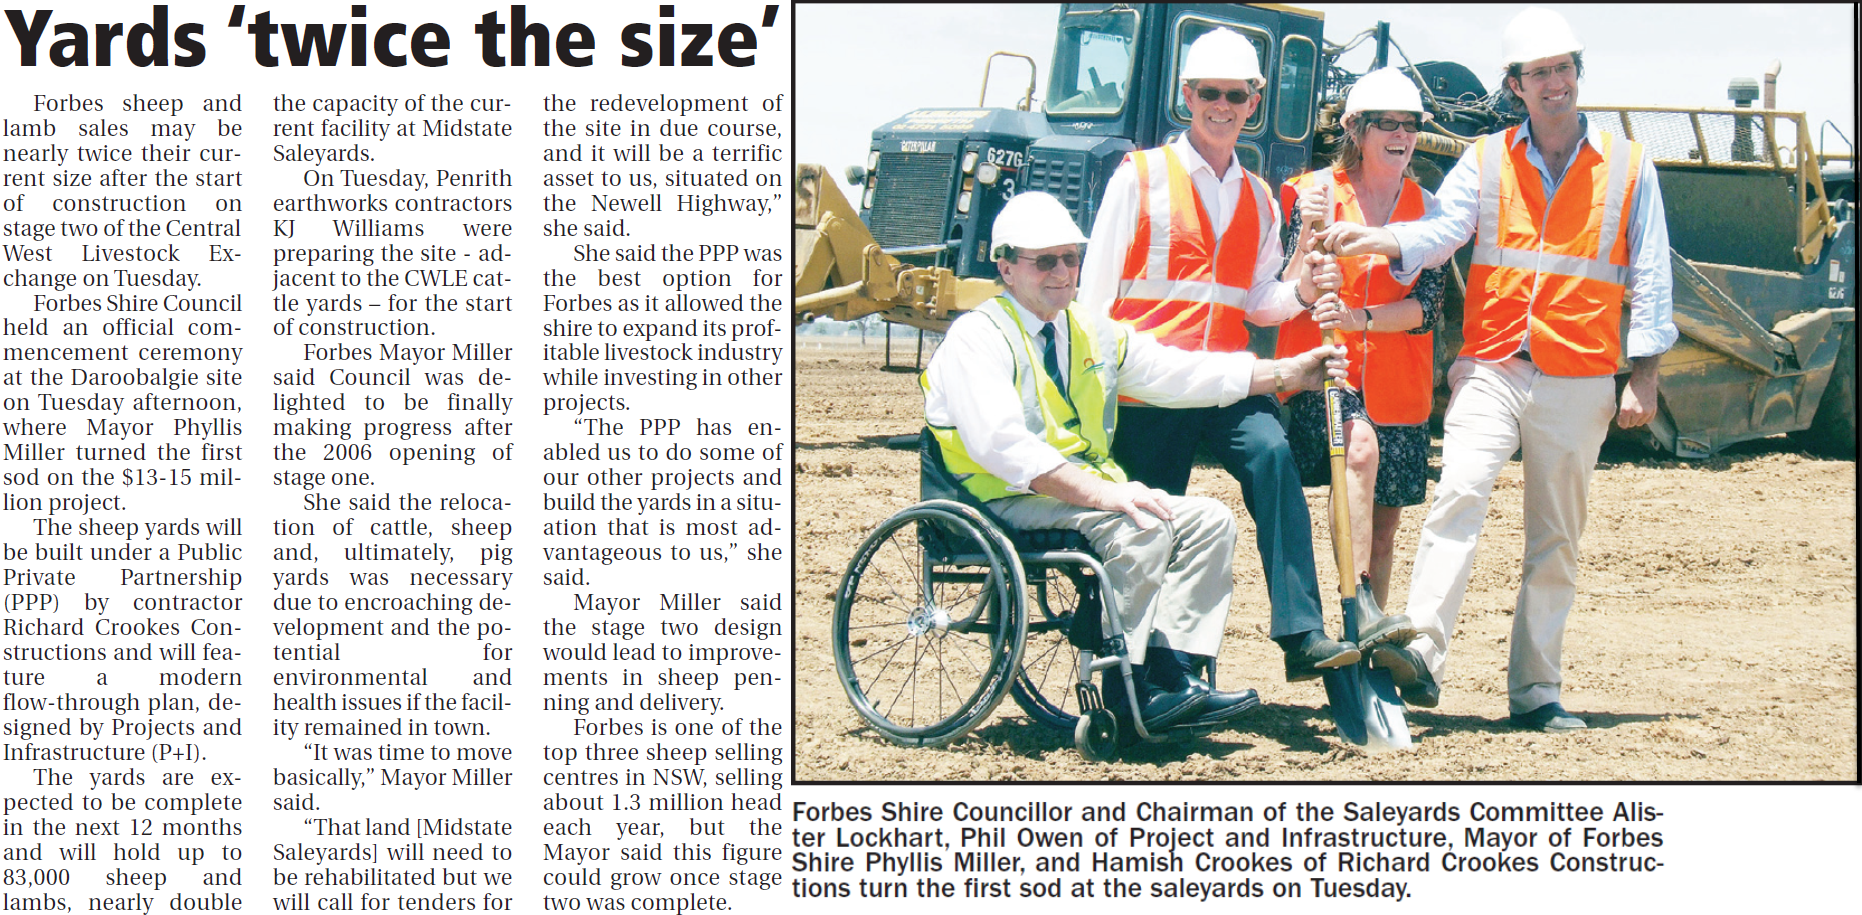 Dignitaries turn the first sod at stage two construction of Central West Livestock Exchange at Daroobalgie. Source: Parkes Champion Post Friday December 11, 2009 p.22